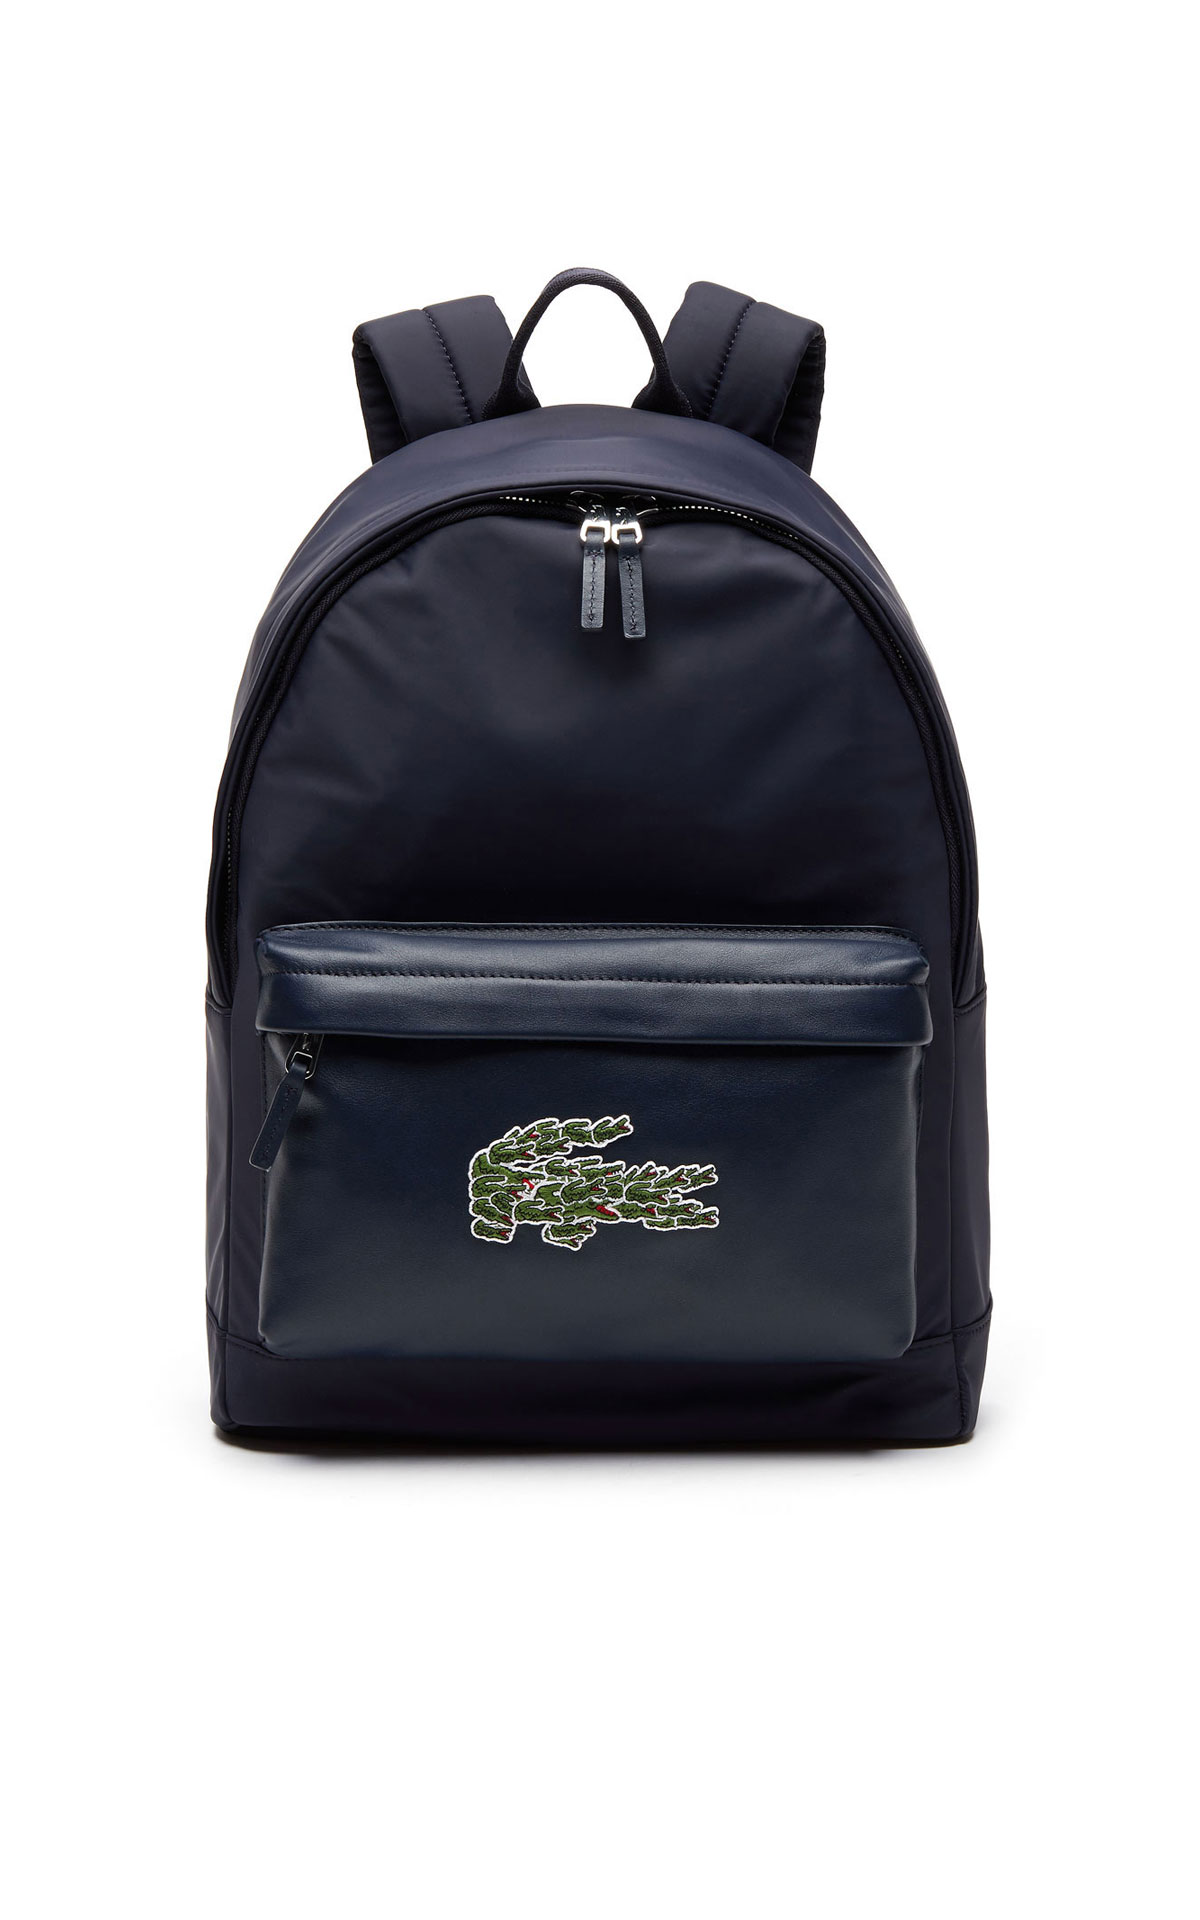 Navy blue Leather backpack from Lacoste